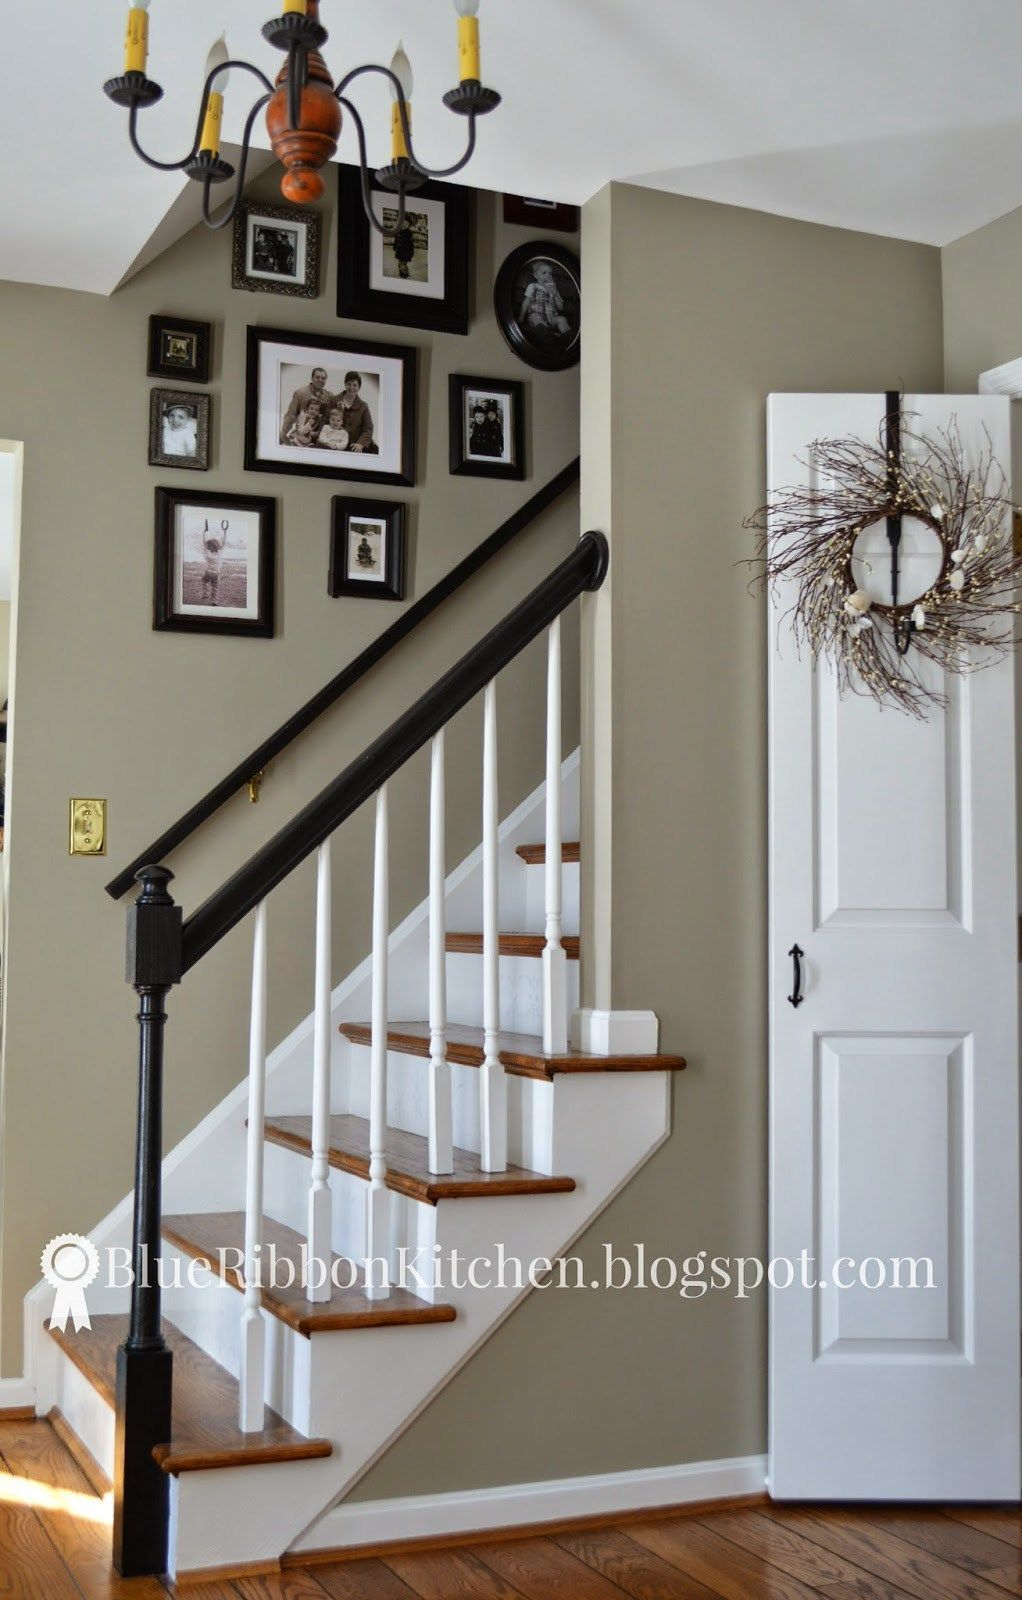 Benjamin Moore Sandy Hook Gray Is One Of The Best Green Greige Beige Paint Colours Shown In Entryway With Stairs And Wood Flooring By Blue Ribbon